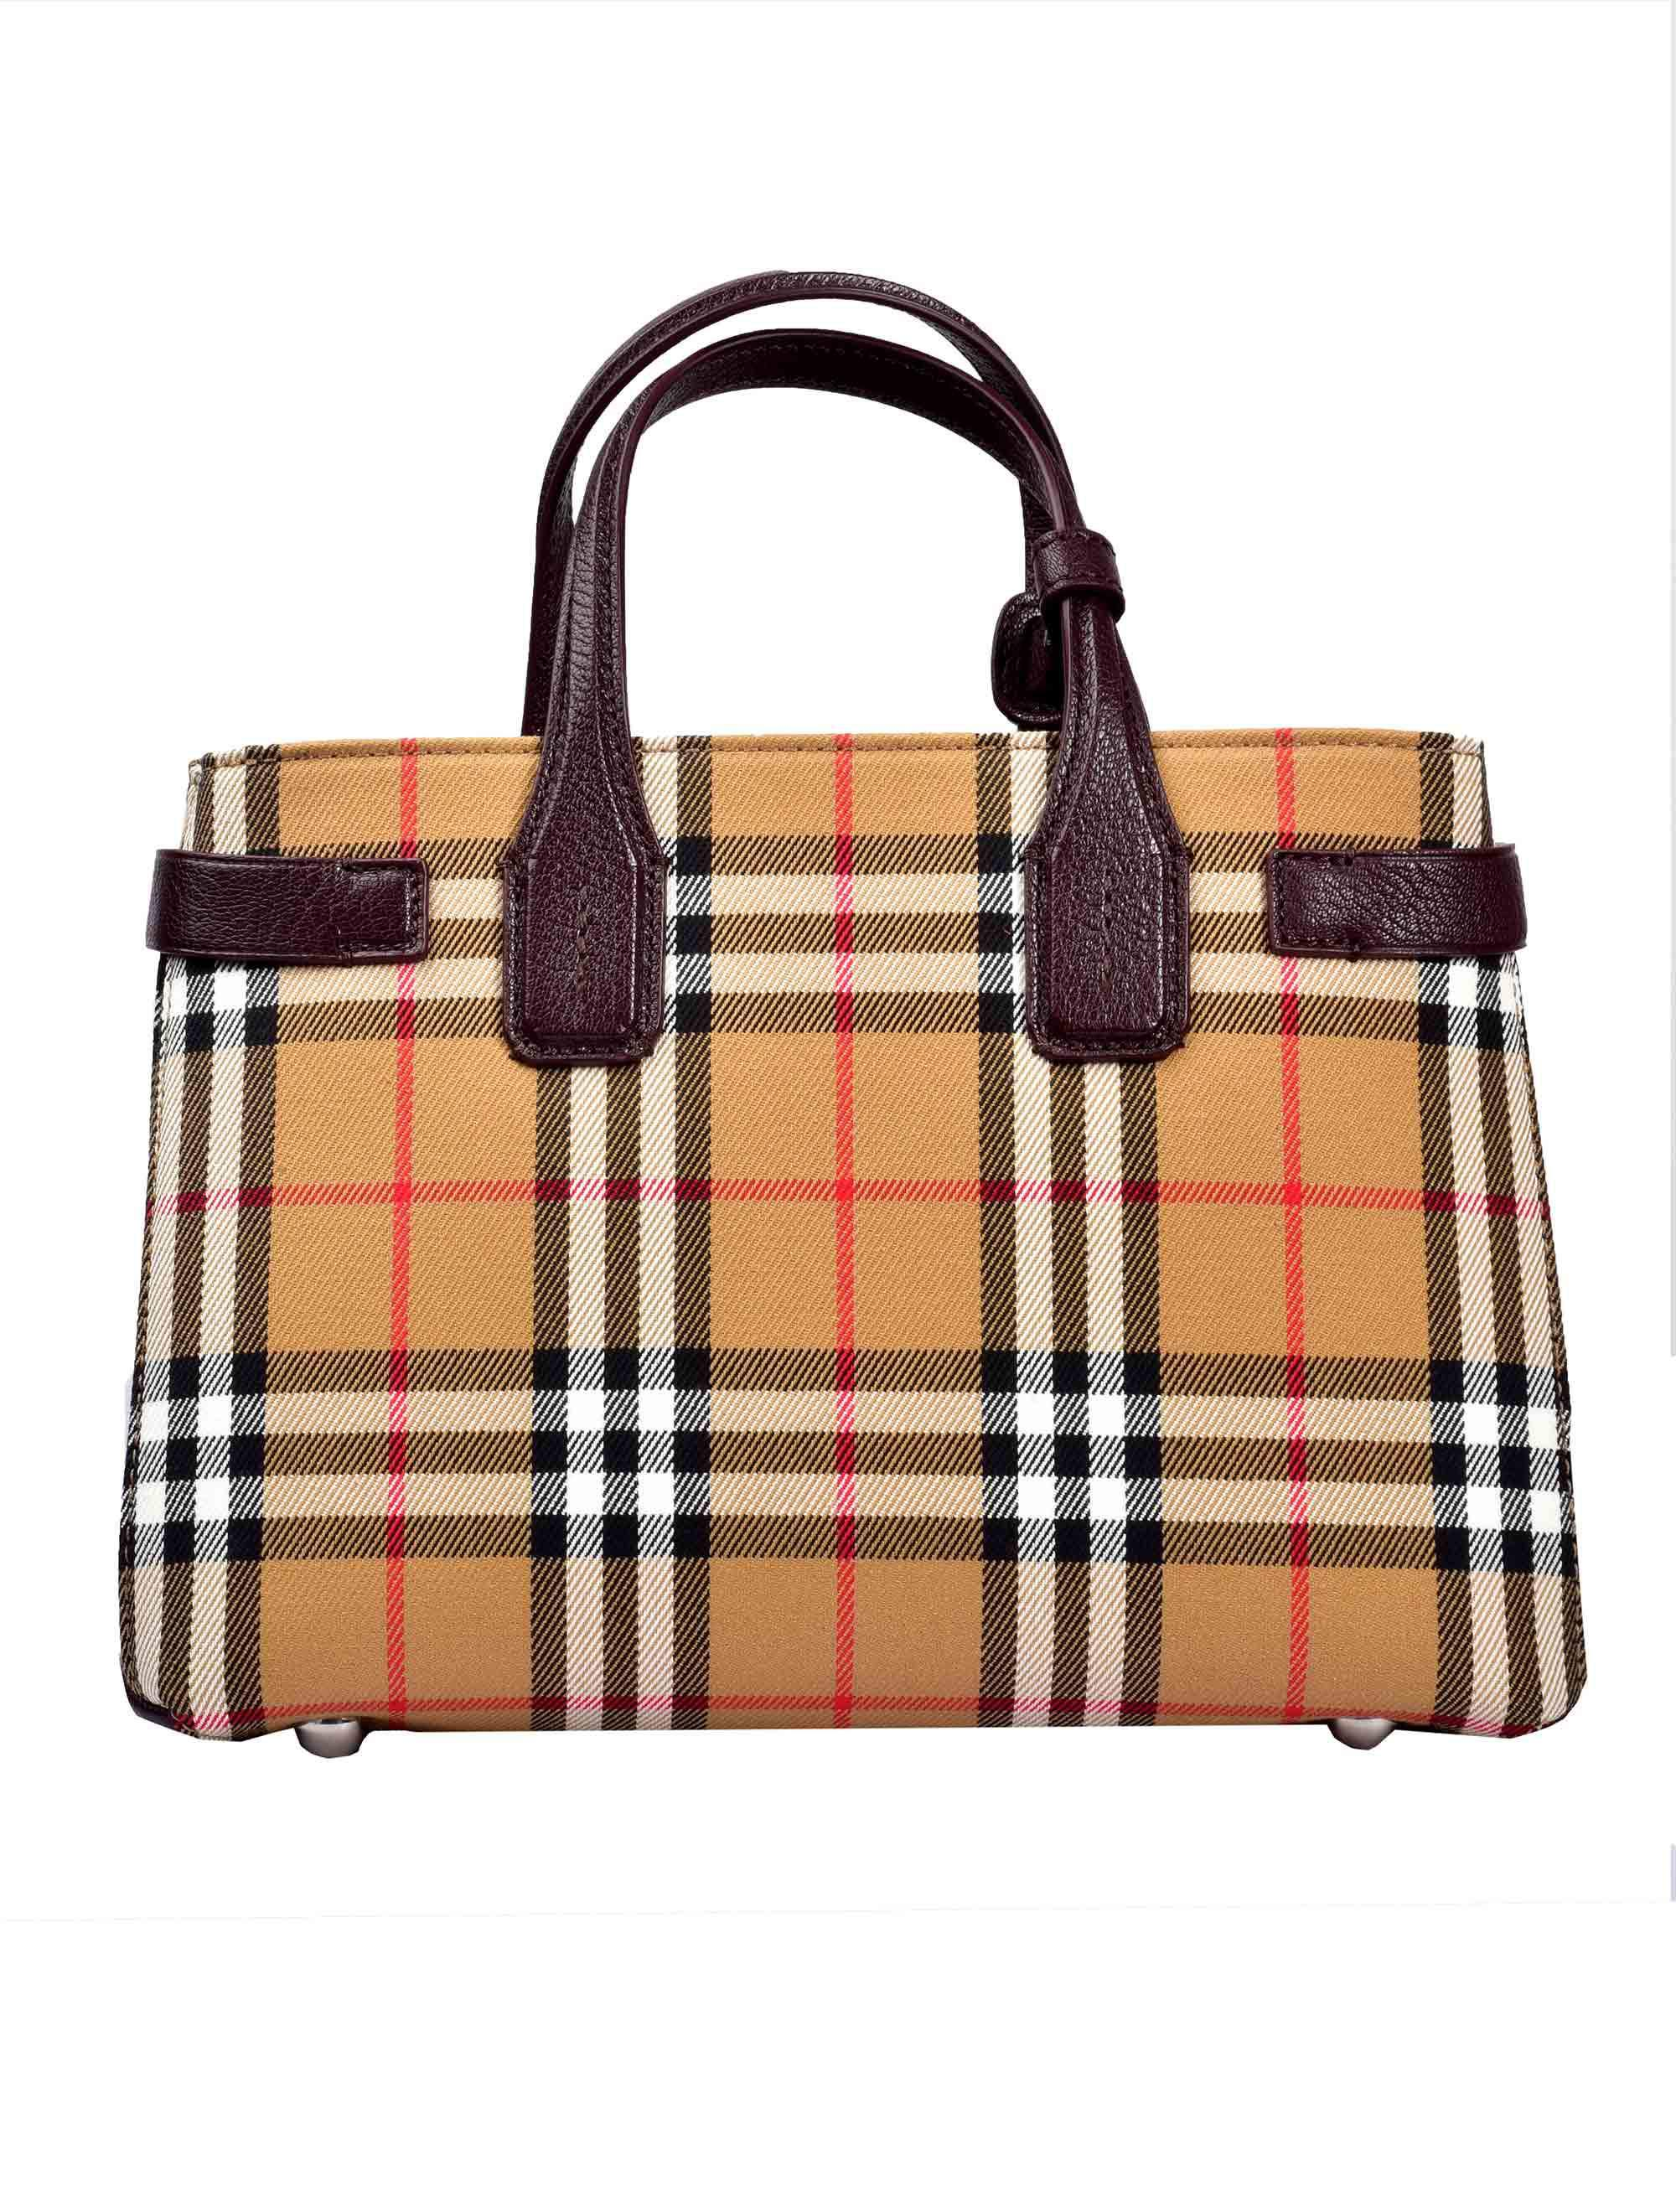 Burberry Small Banner Top Handle Bag in Brown - Lyst 3dfad364452f4